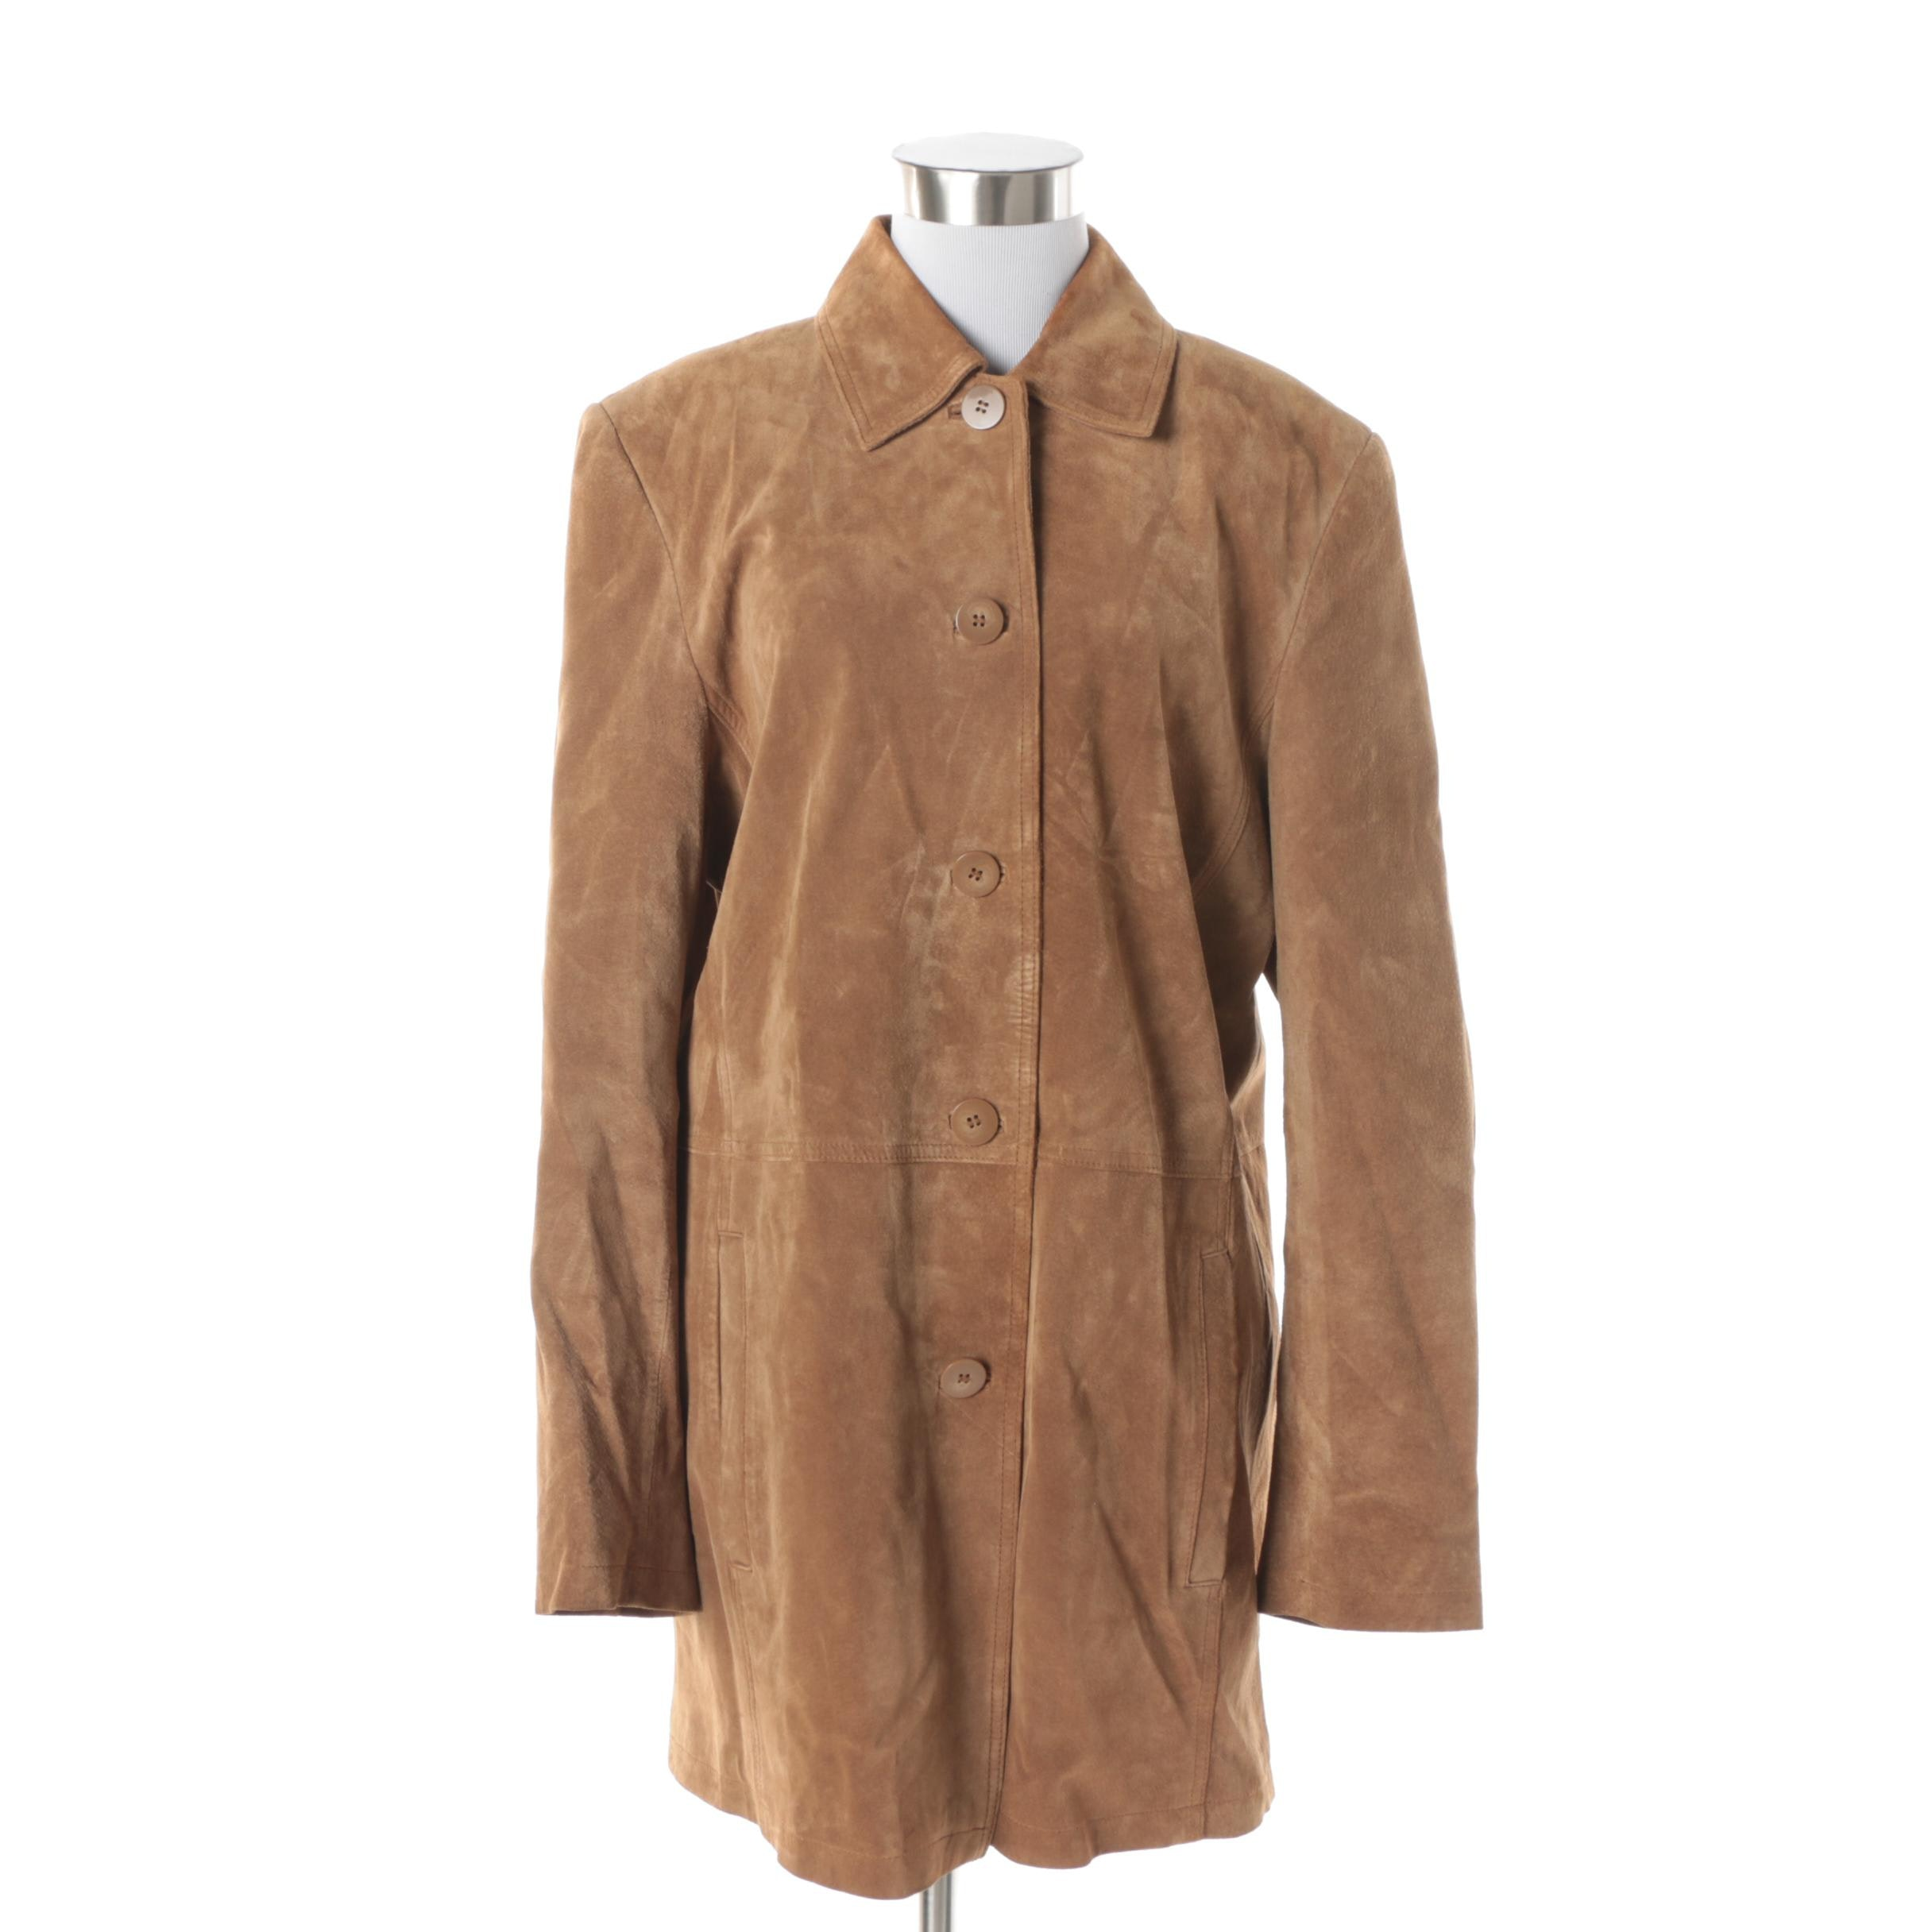 Women's Bernardo Collection Brown Suede Jacket